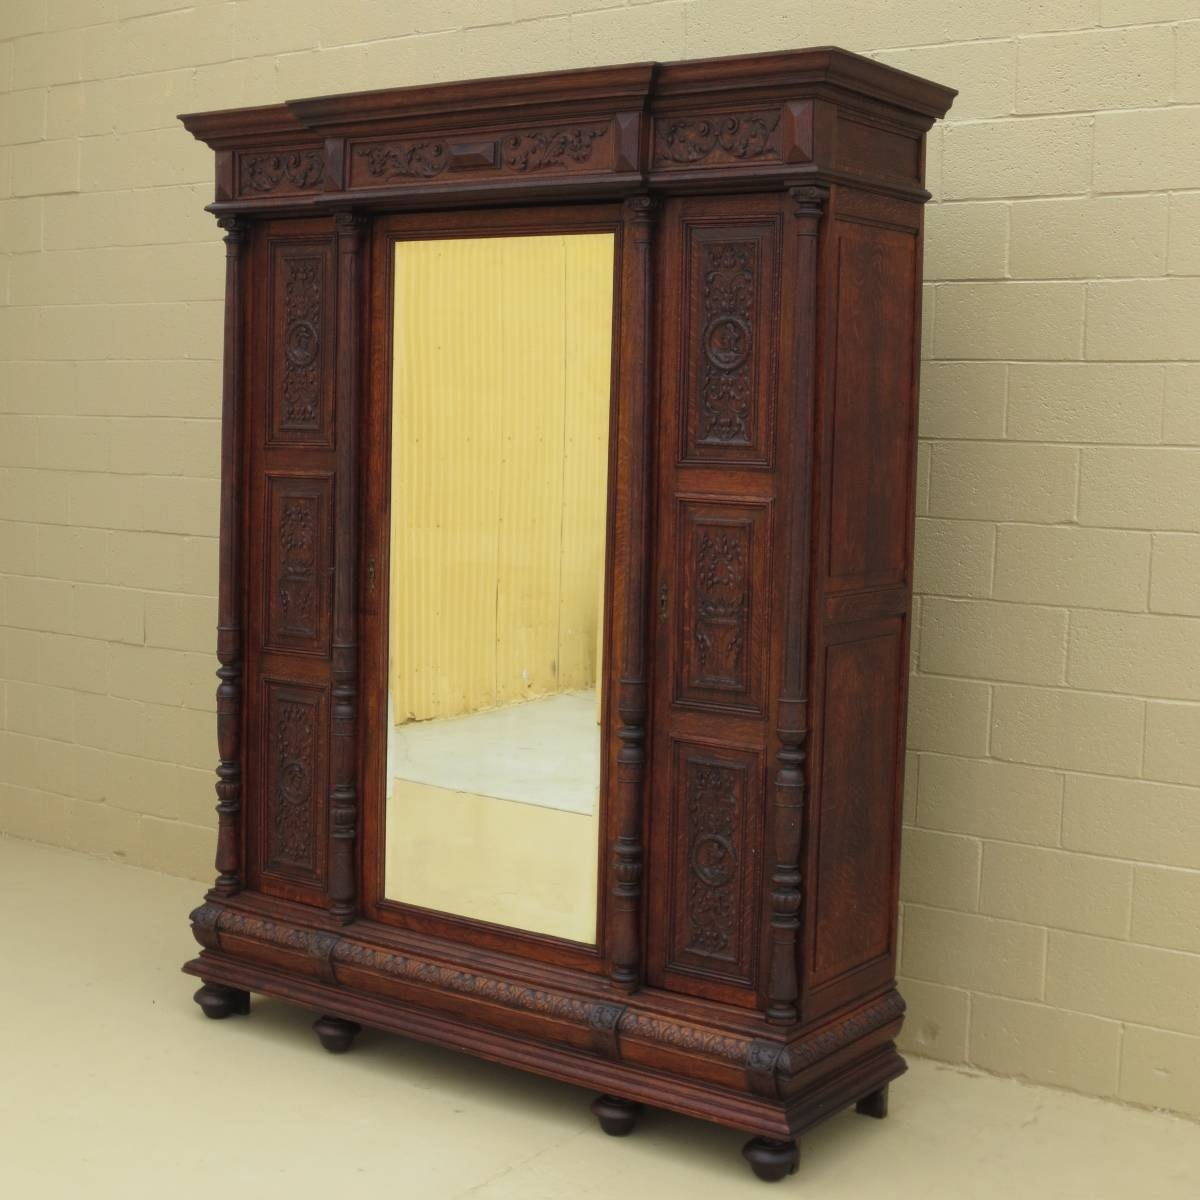 Antique Armoires And Antique Wardrobes inside French Antique Wardrobes (Image 4 of 15)